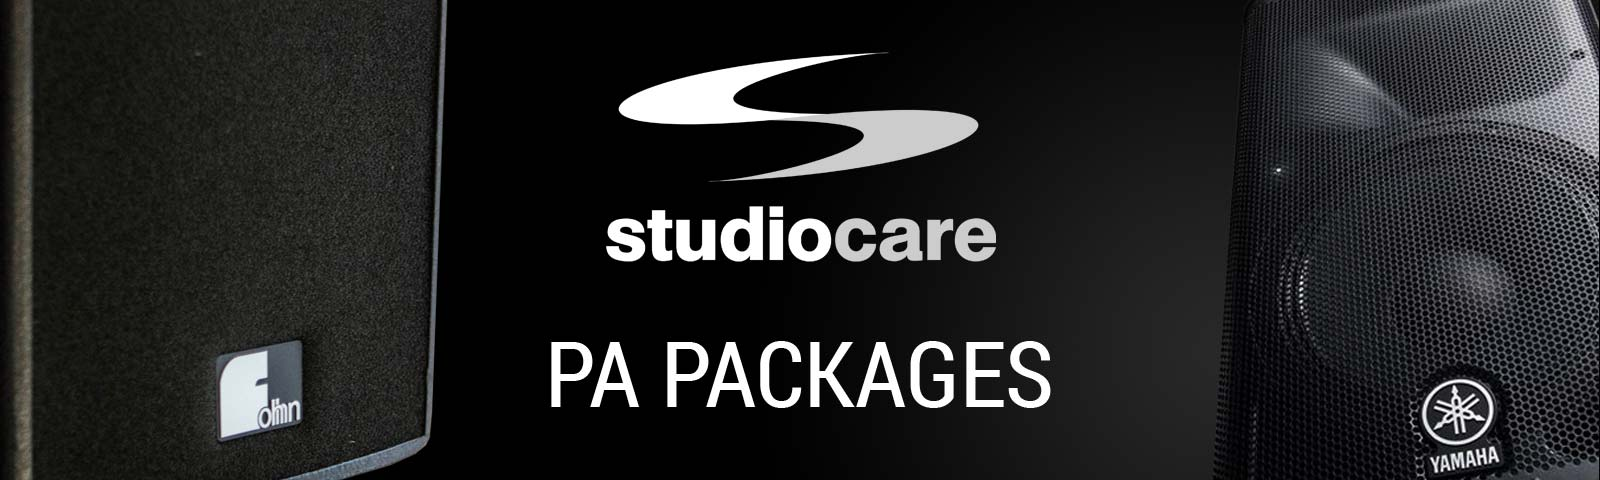 PA Packages